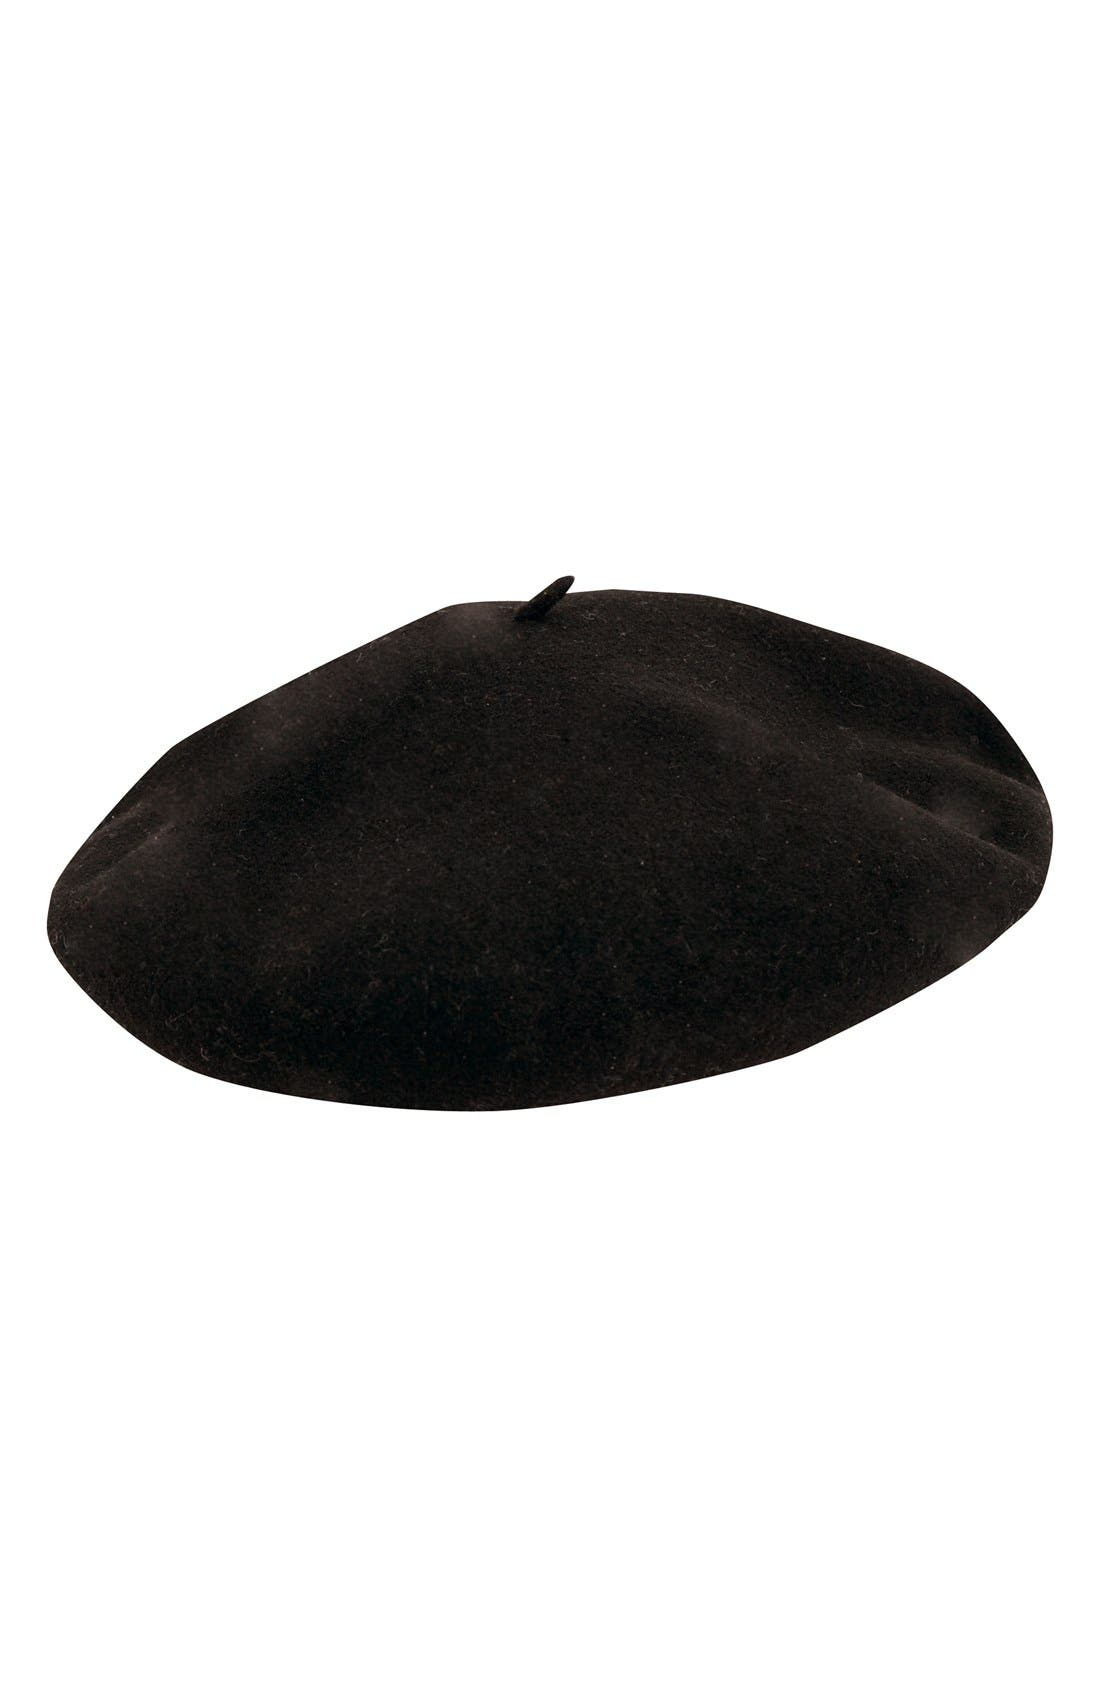 'Basque' Beret,                         Main,                         color, Black